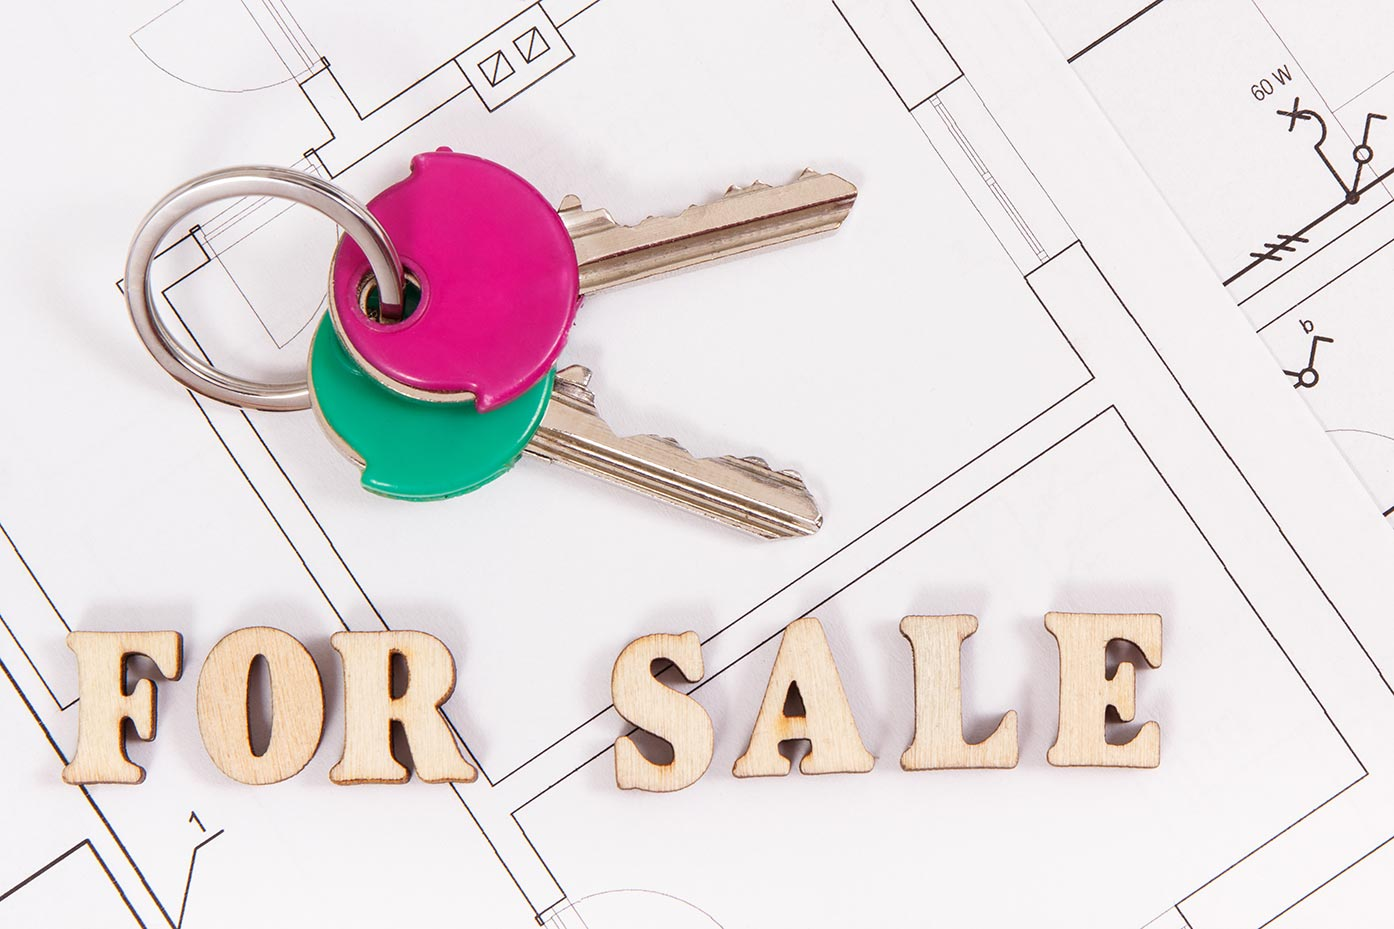 Real Estate - Buying a home mortgages